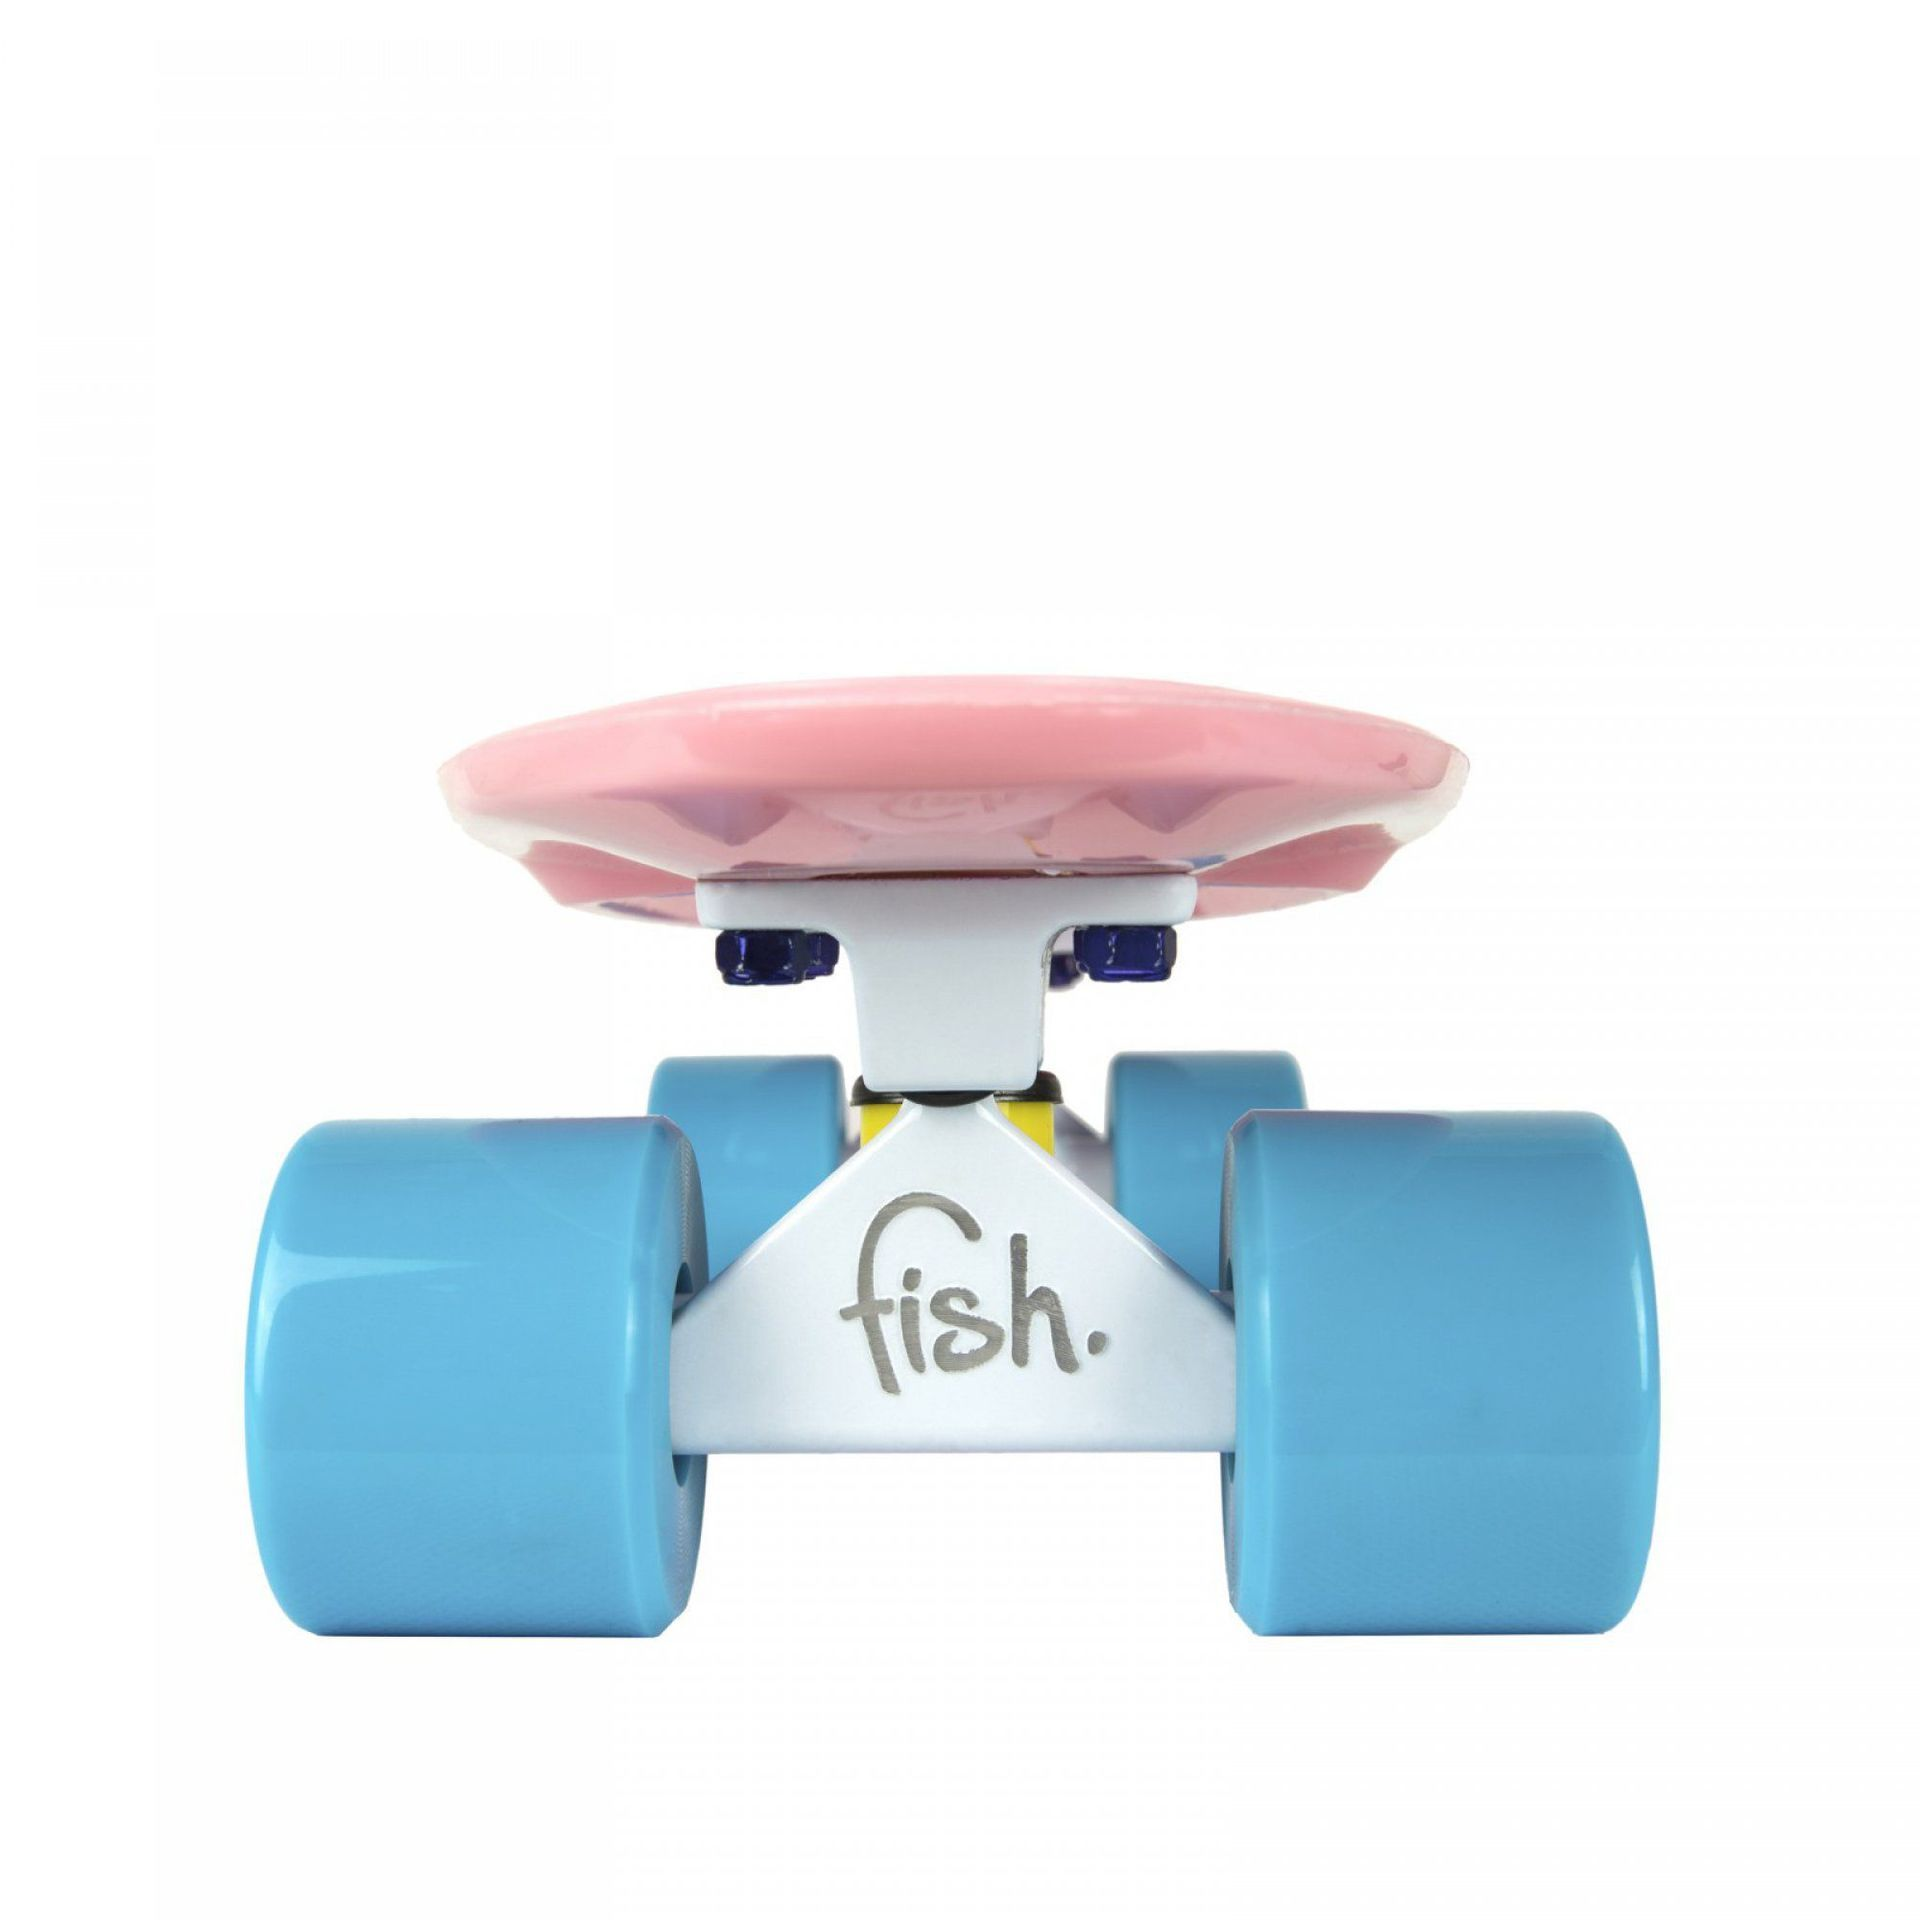 FISHBOARD FISH SKATEBOARDS CLASSIC SUMMER PINK|WHITE|SUMMER BLUE 2